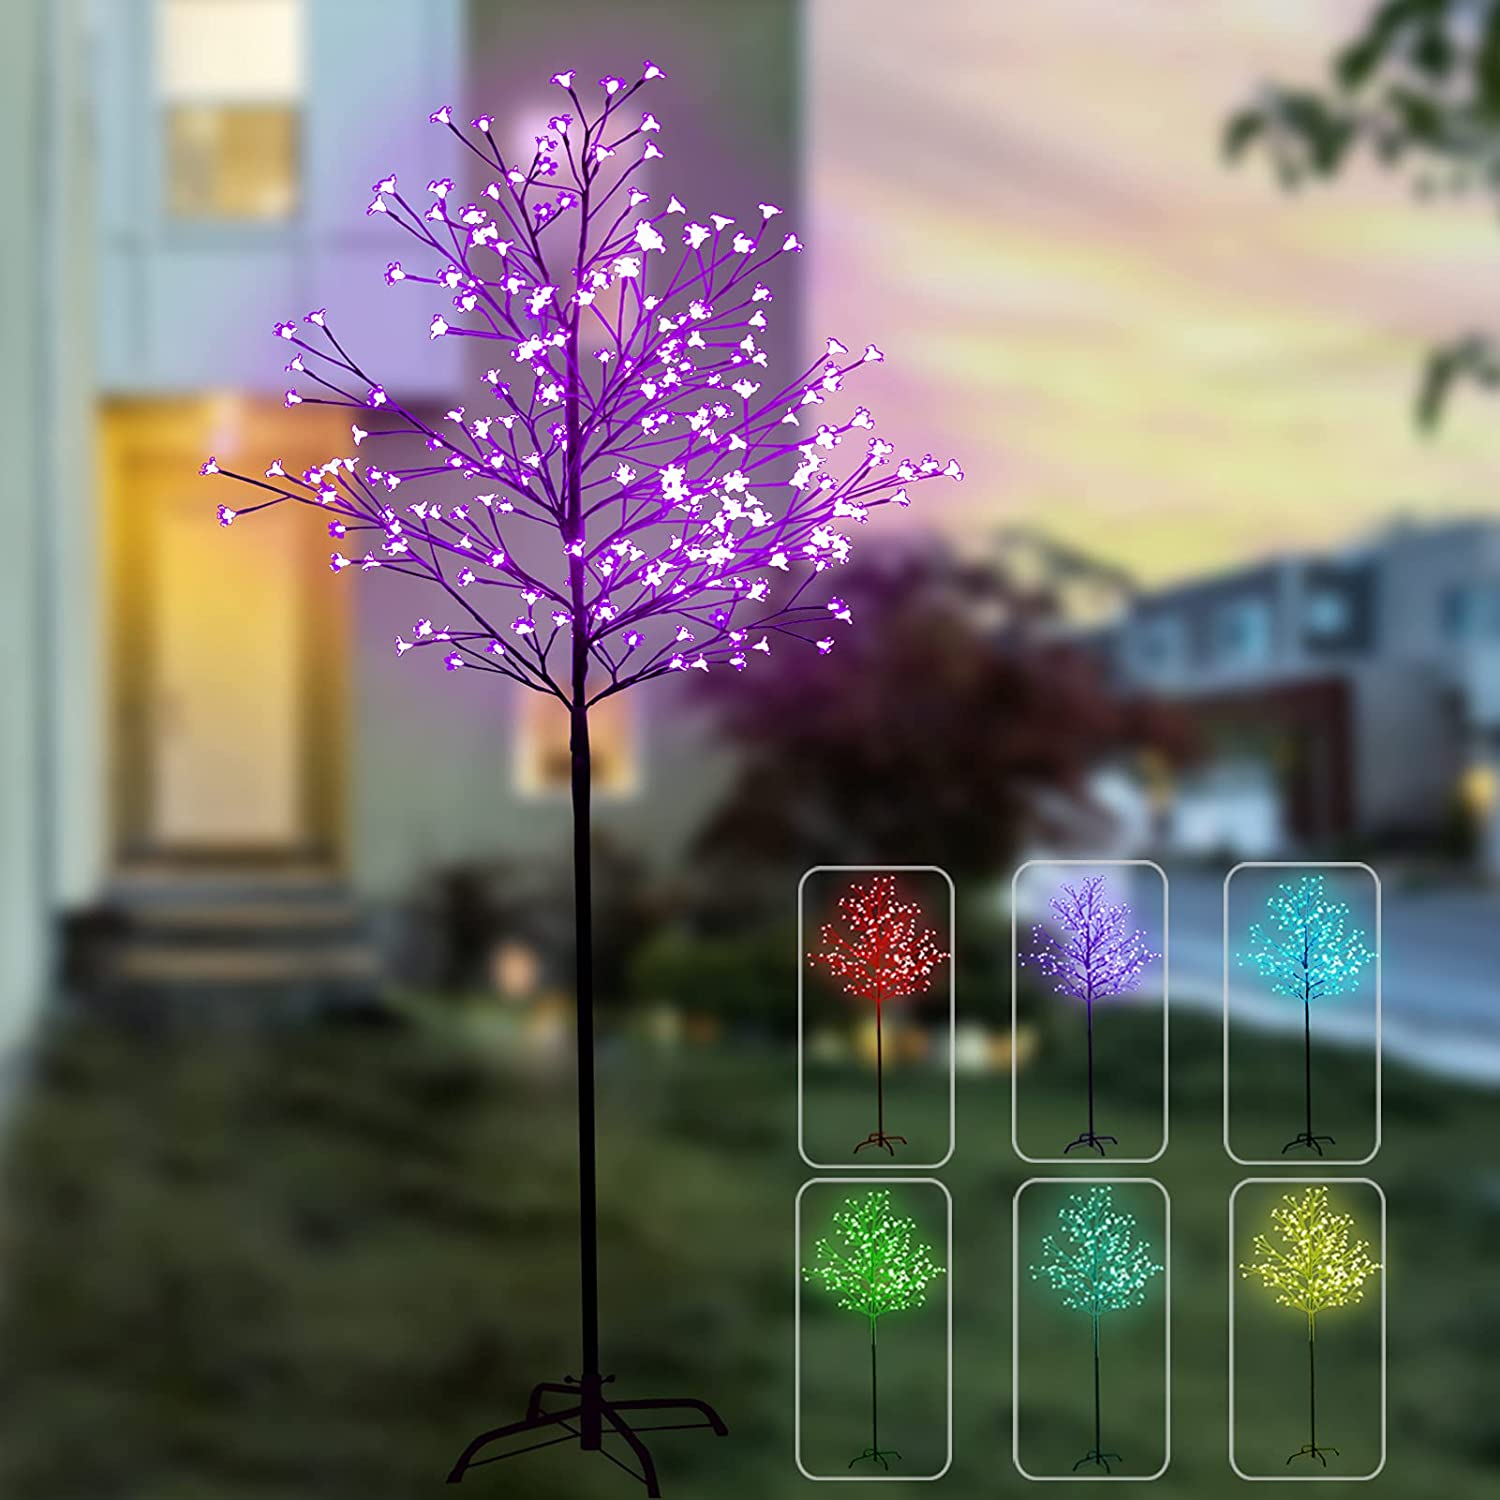 7 Feet 224 LED Color Changing Cherry Blossom Tree Light, Lighted LED Tree with Remote, Artificial Trees with Lights for Home Decor Corner Indoor Outdoor Party Wedding Christmas